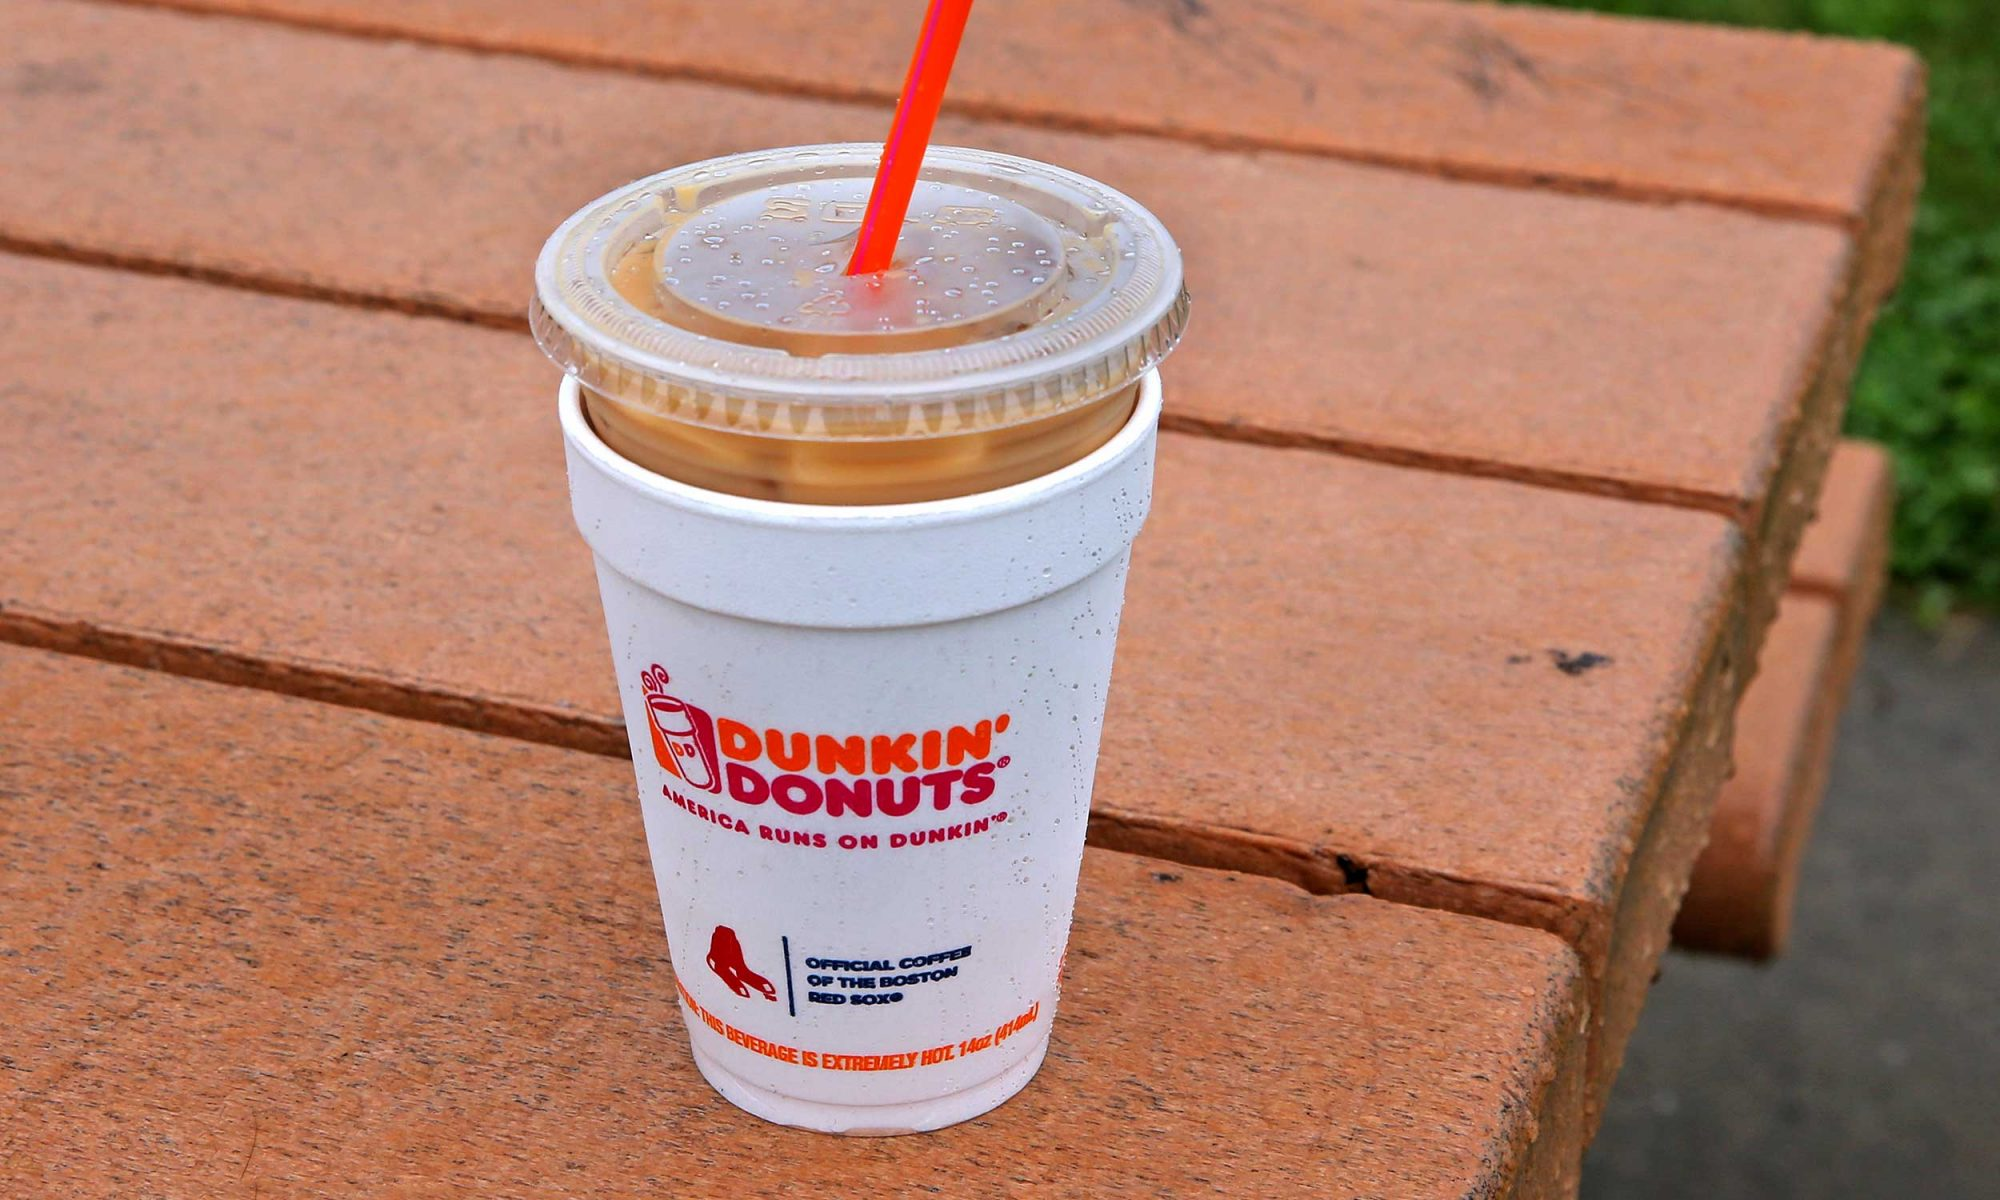 EC: Dunkin' Donuts Menu Is Shrinking But No One Seems to Mind